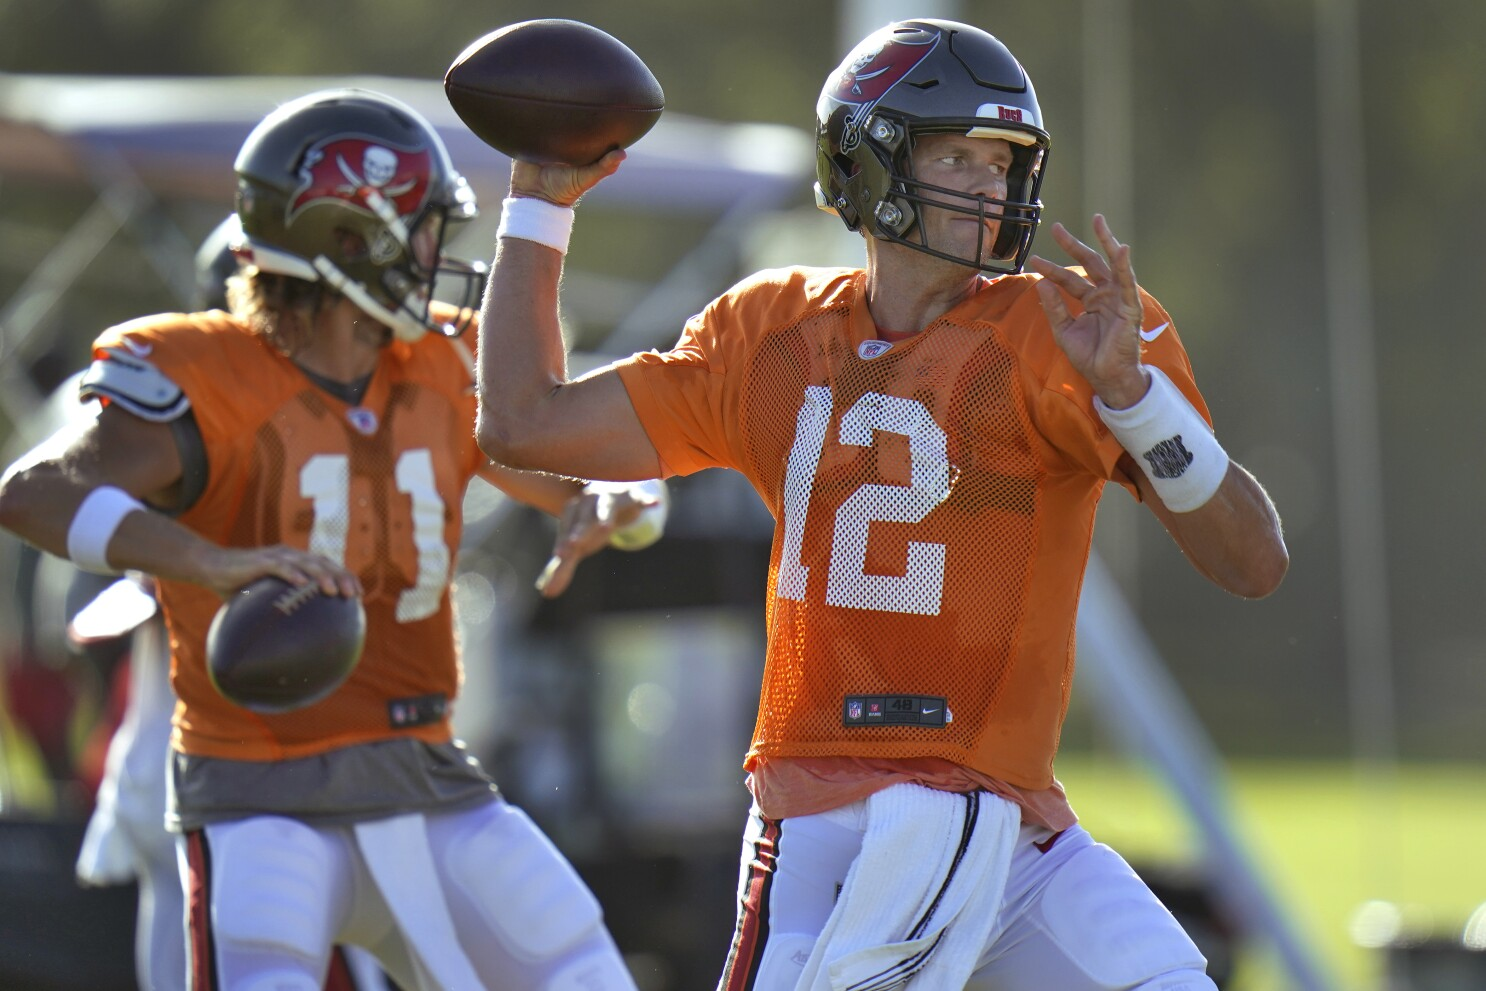 Brady Led Buccaneers Look To End Long Playoff Drought The San Diego Union Tribune